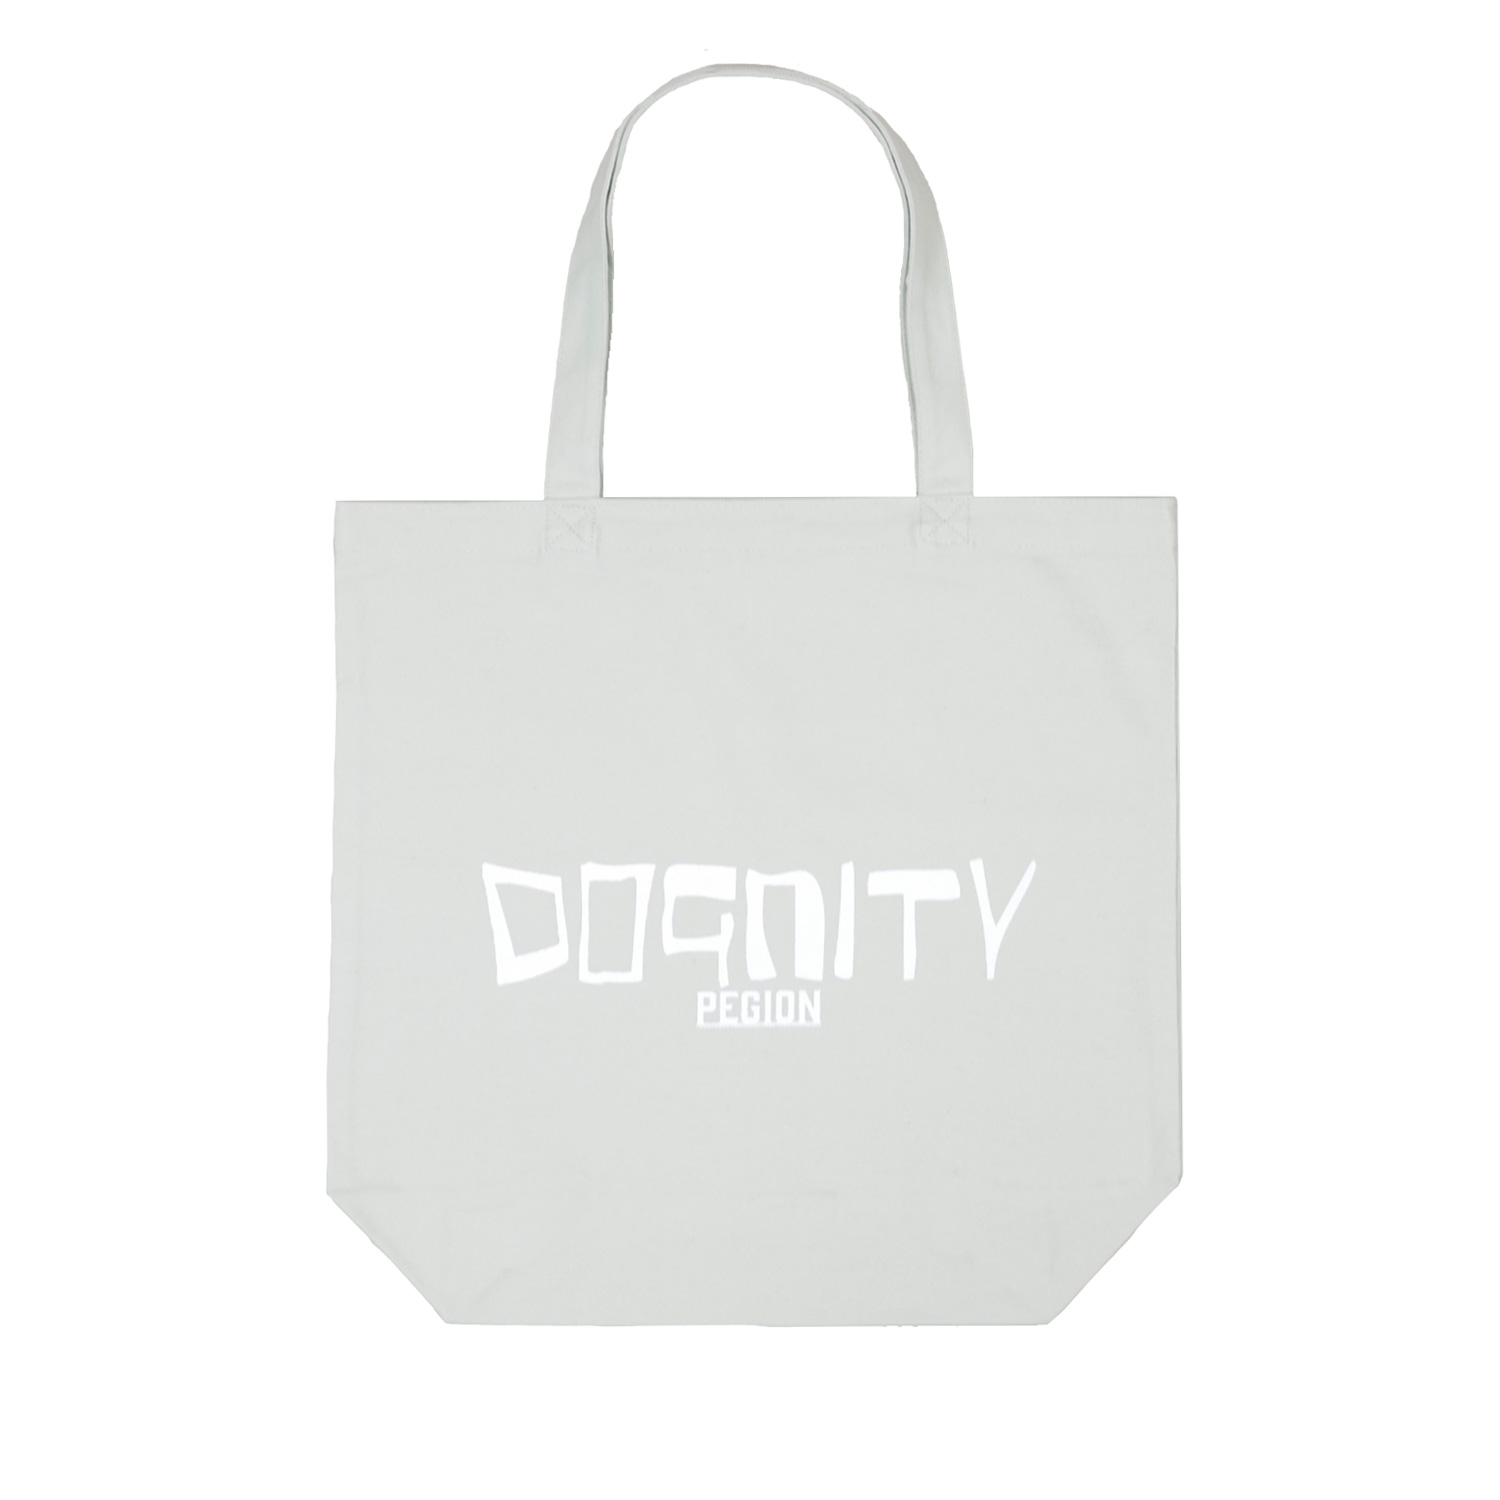 【CHARITY GOODS】DOGNITY TOTE BAG - GREY